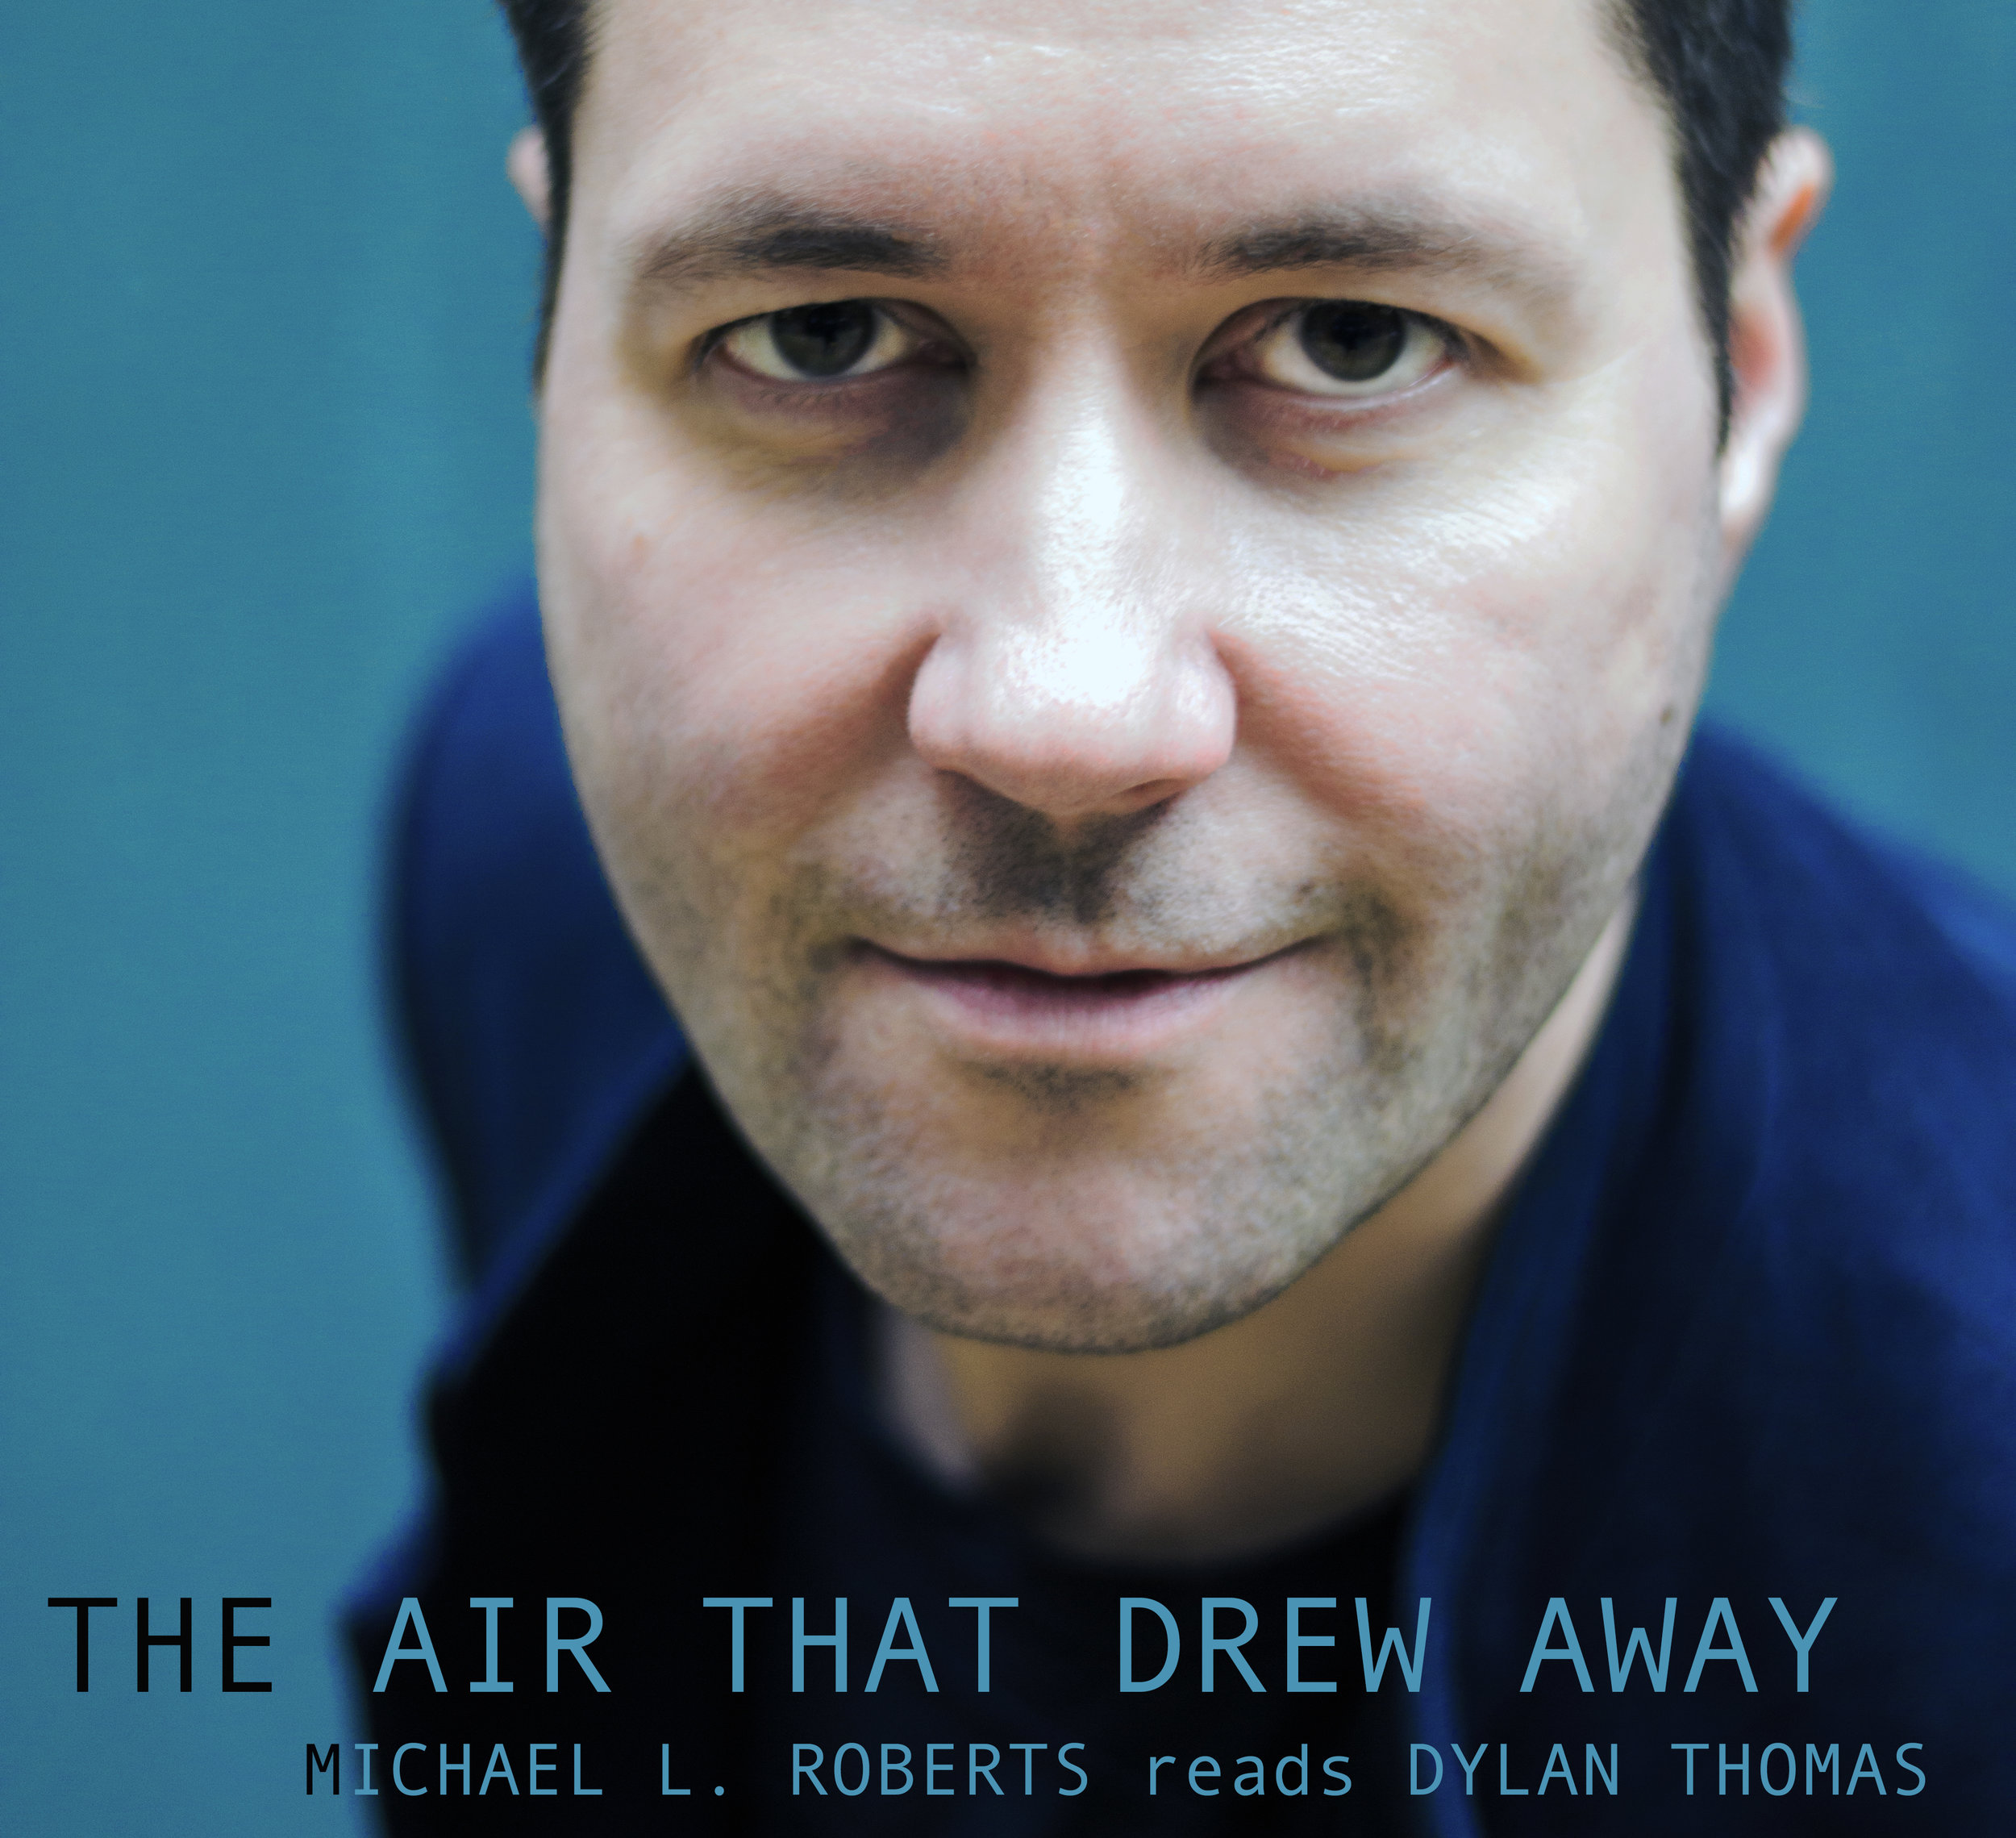 The Air That Drew Away Record Cover.jpg